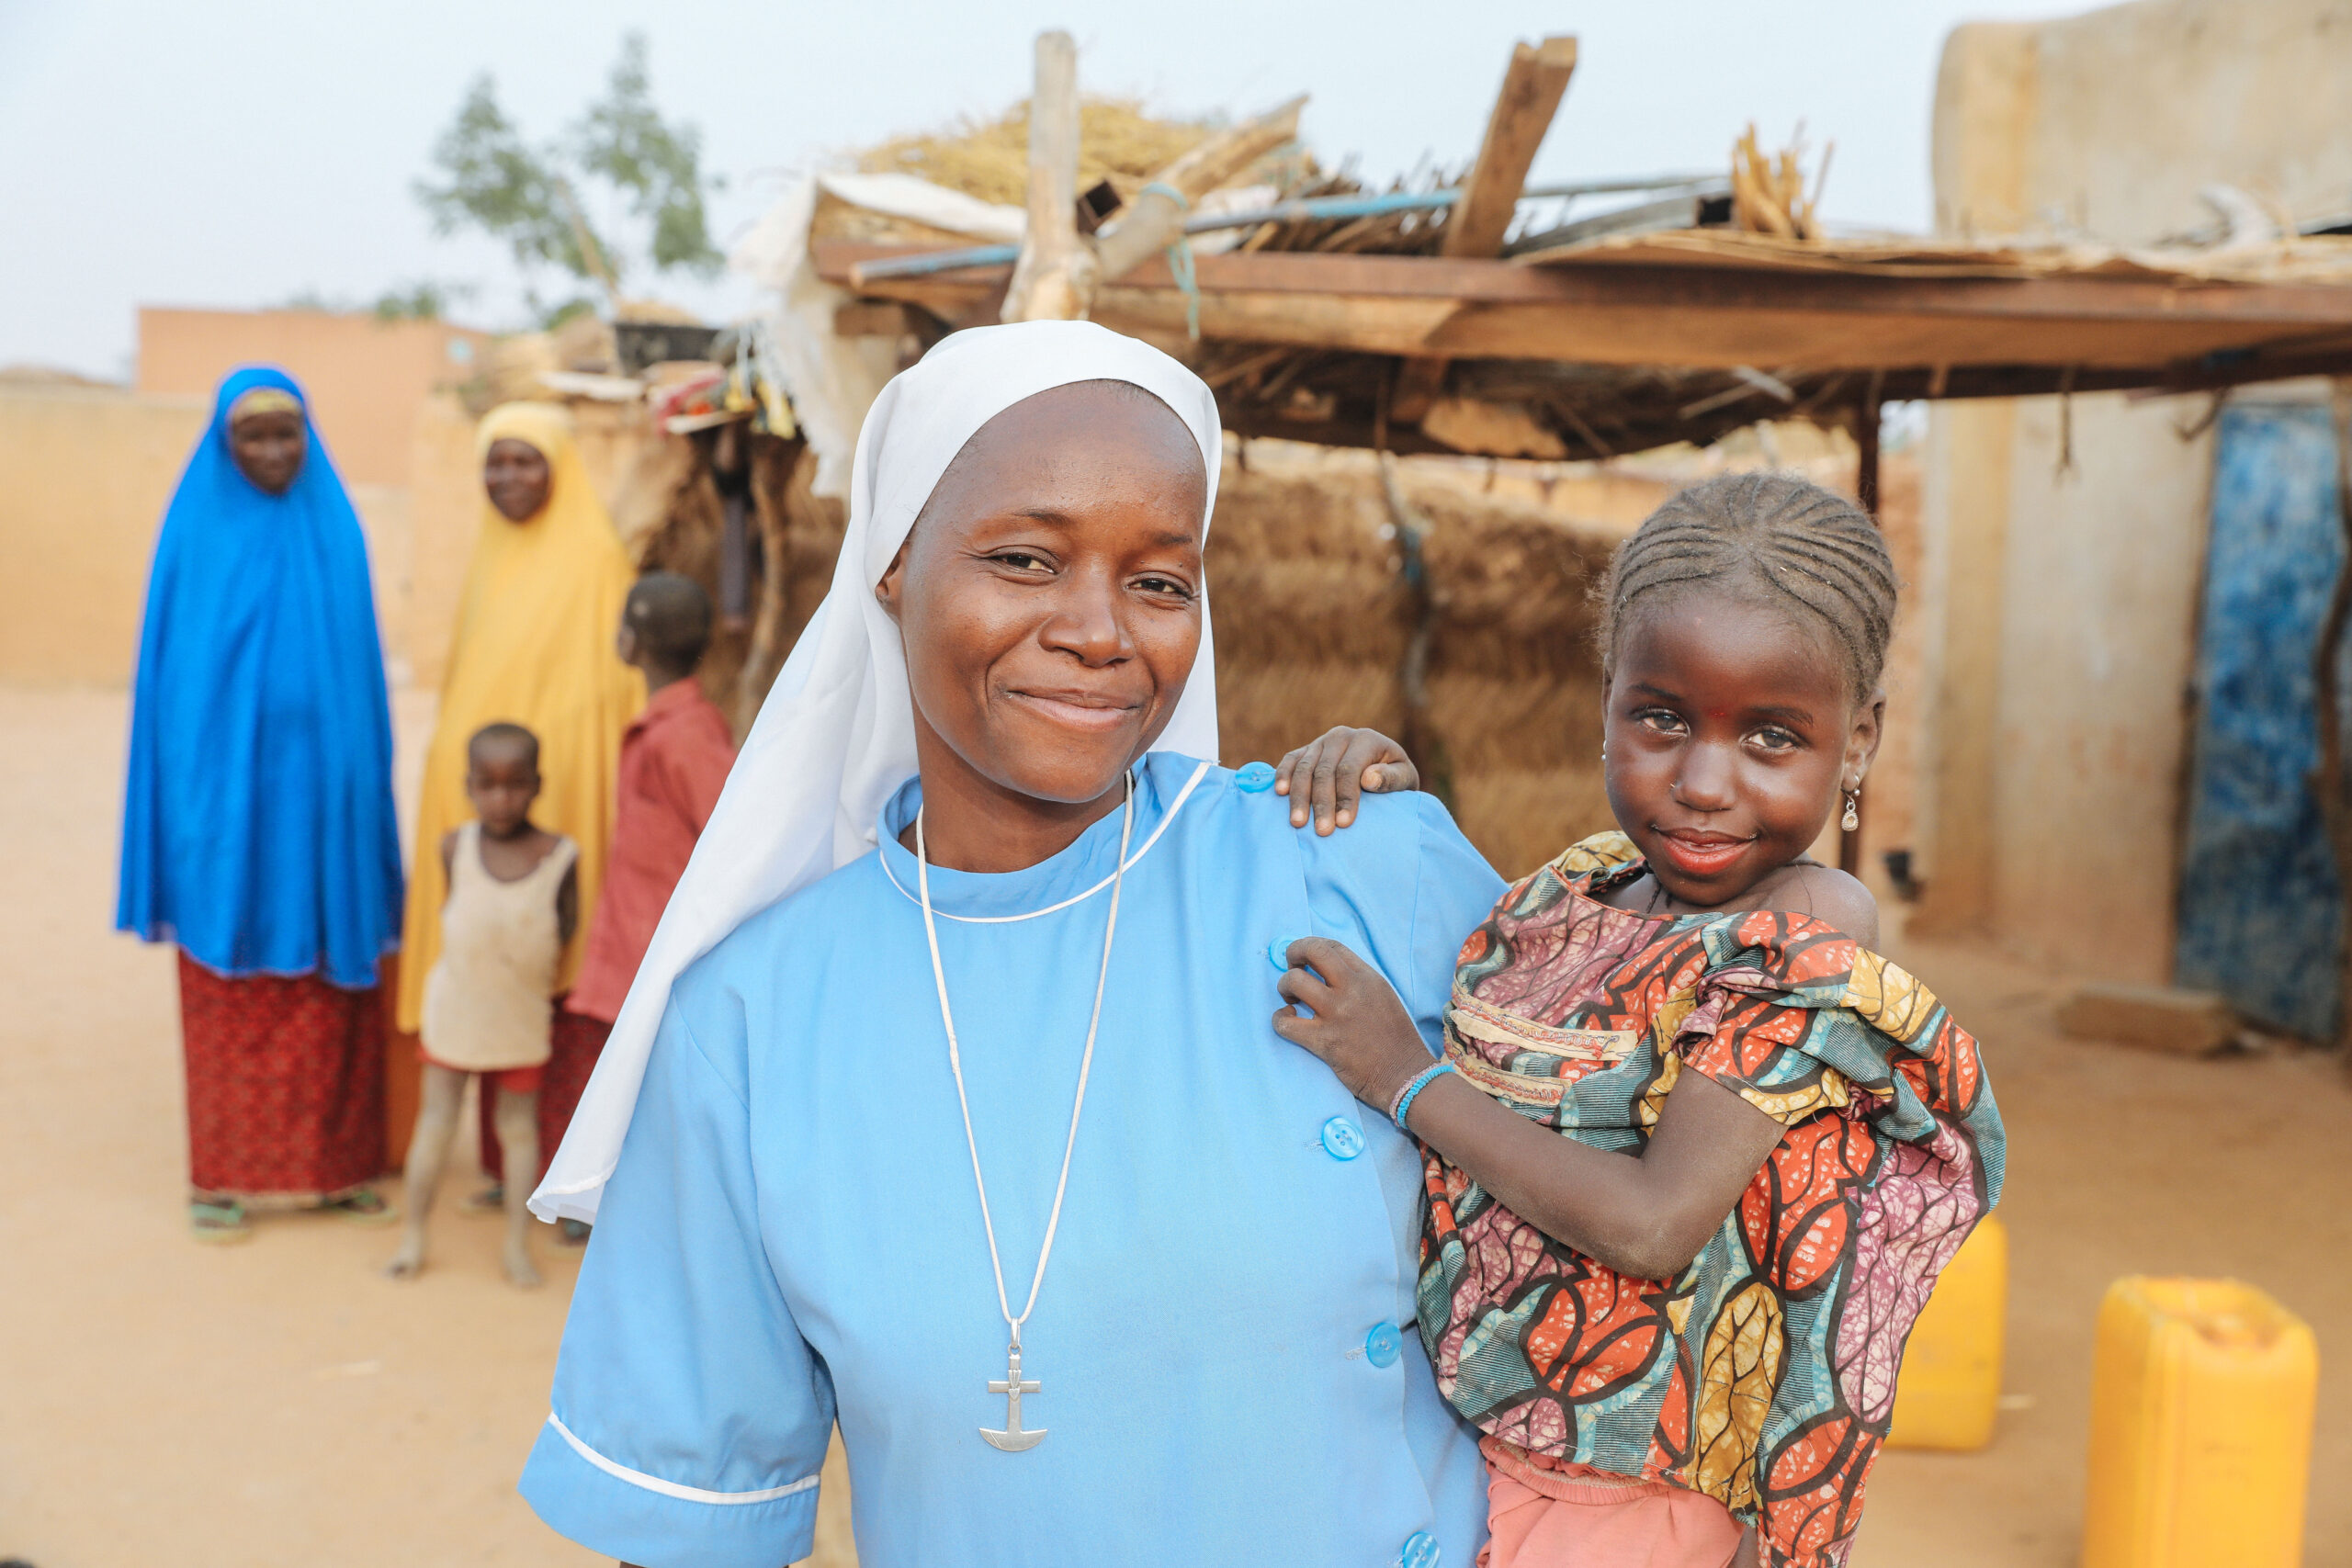 Image of Sr Félicité Sampo holding a small child